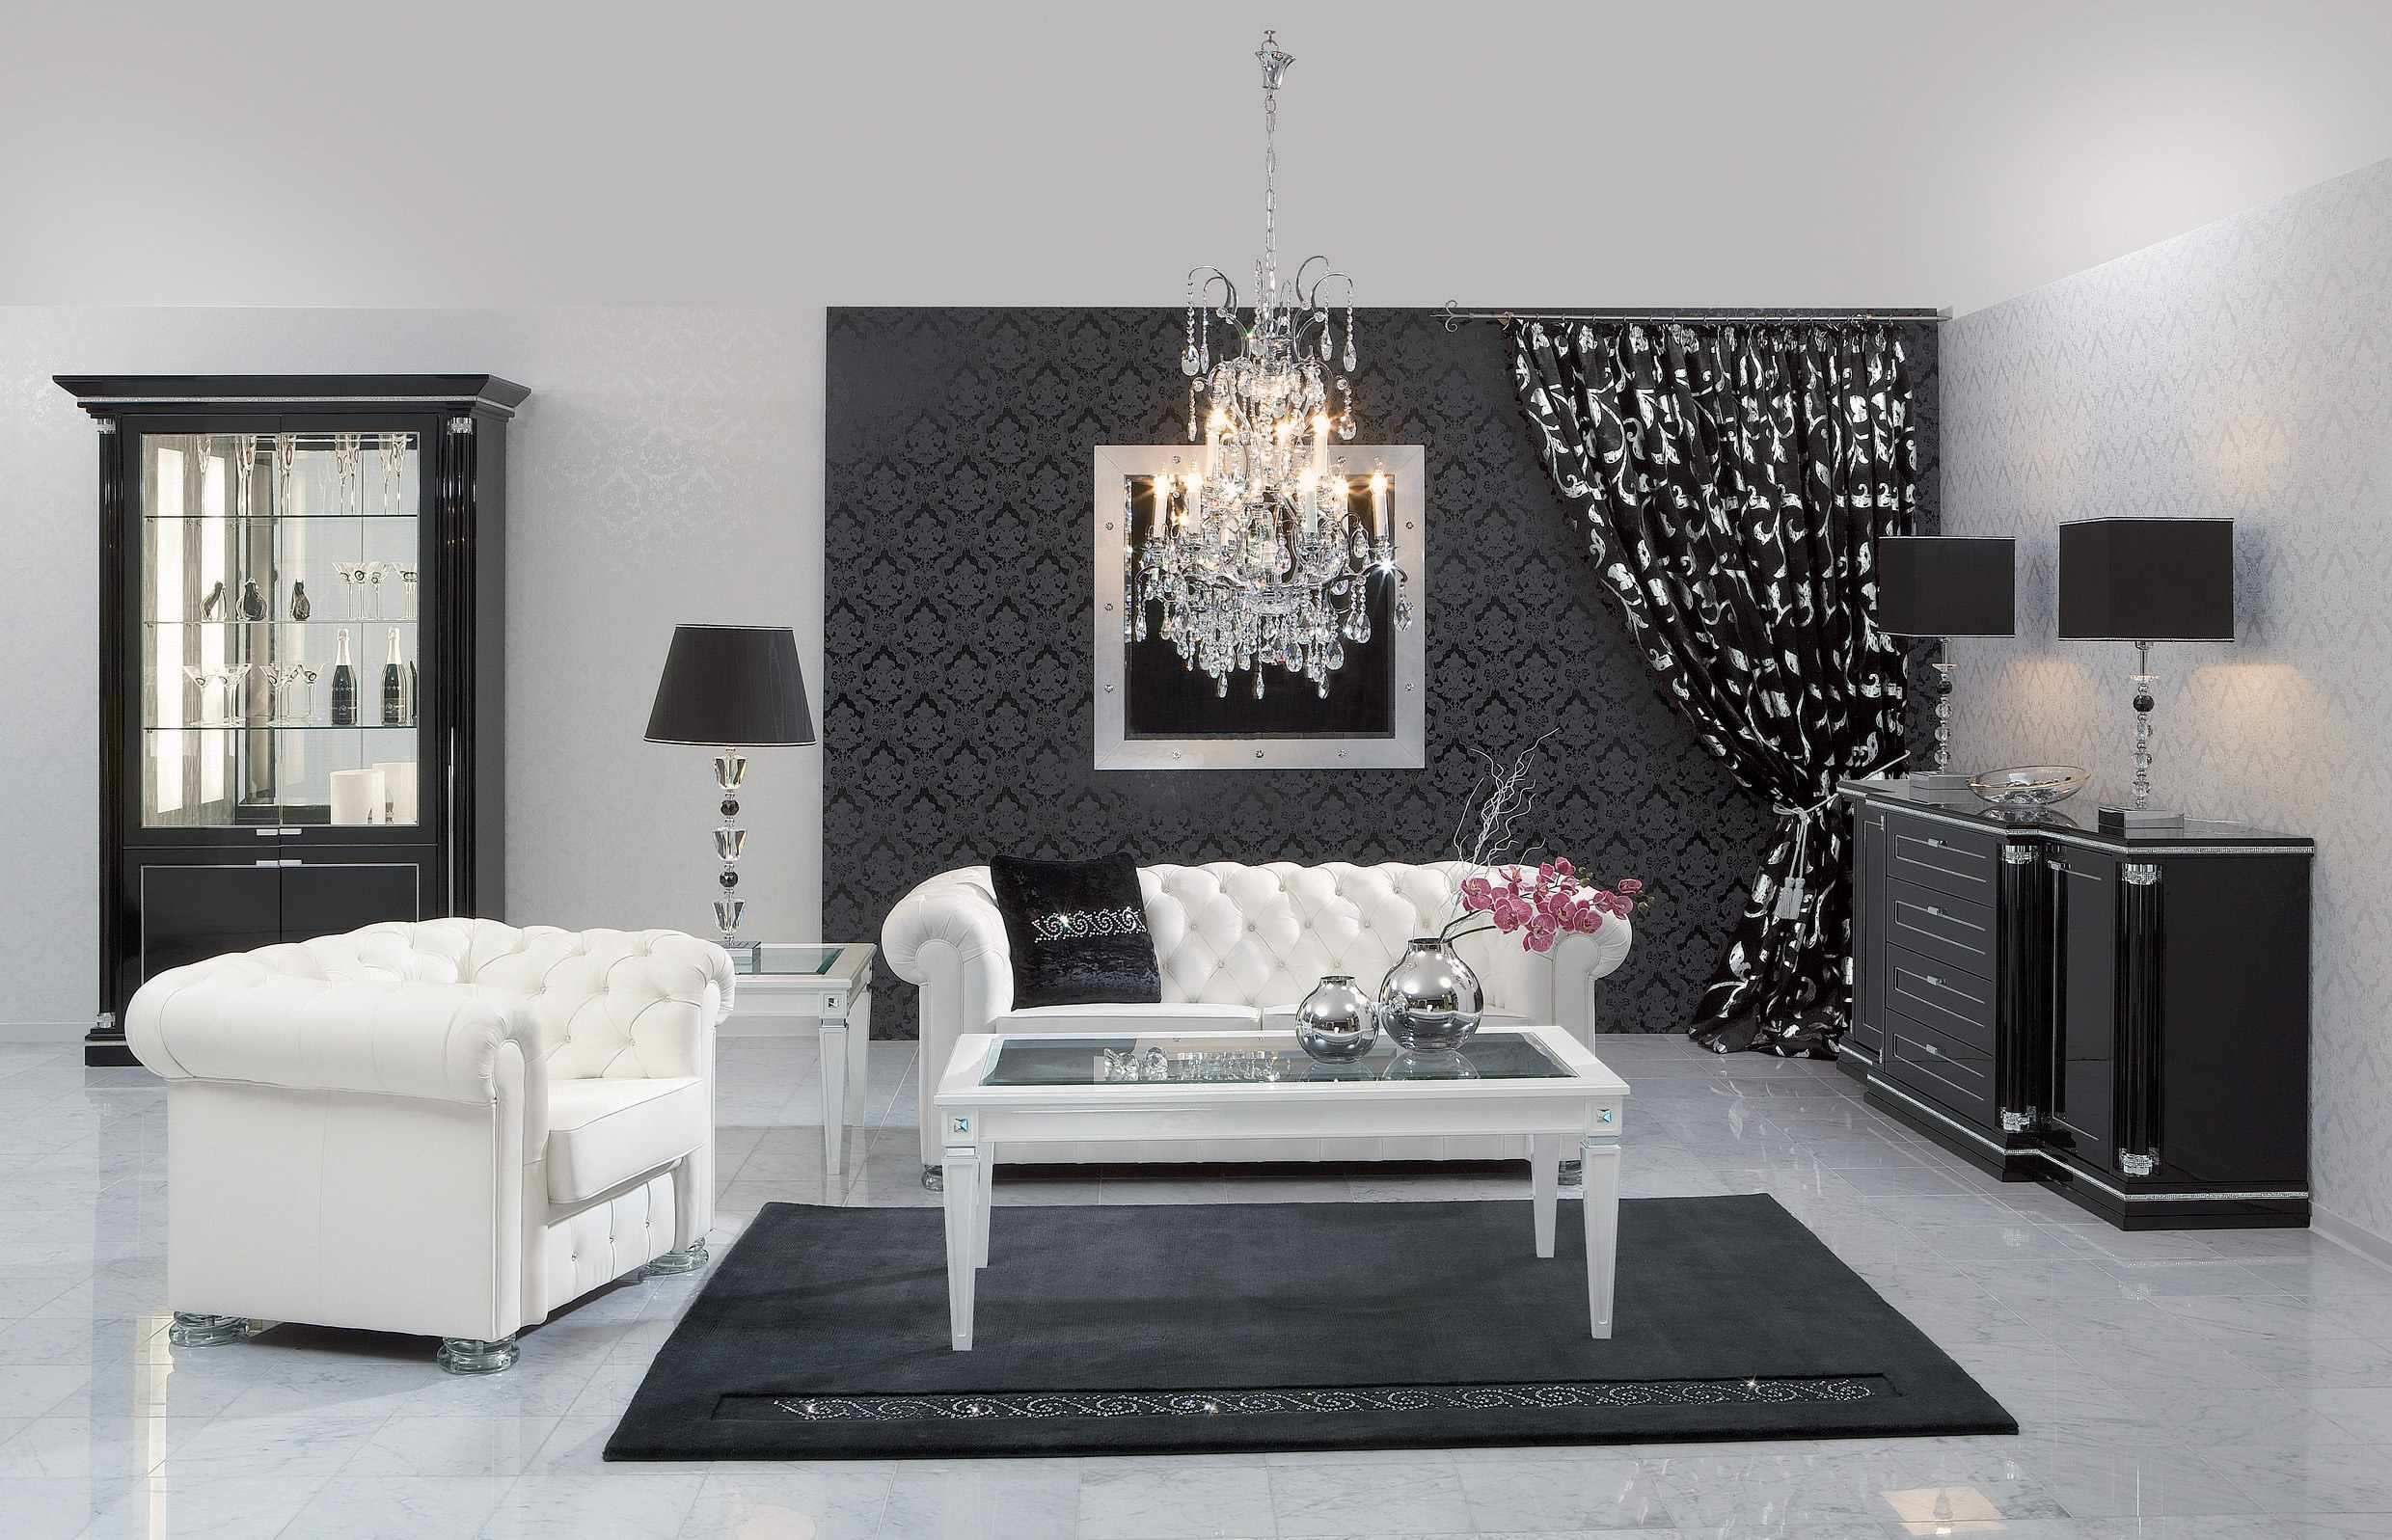 Delicieux 17 Inspiring Wonderful Black And White Contemporary Interior Designs